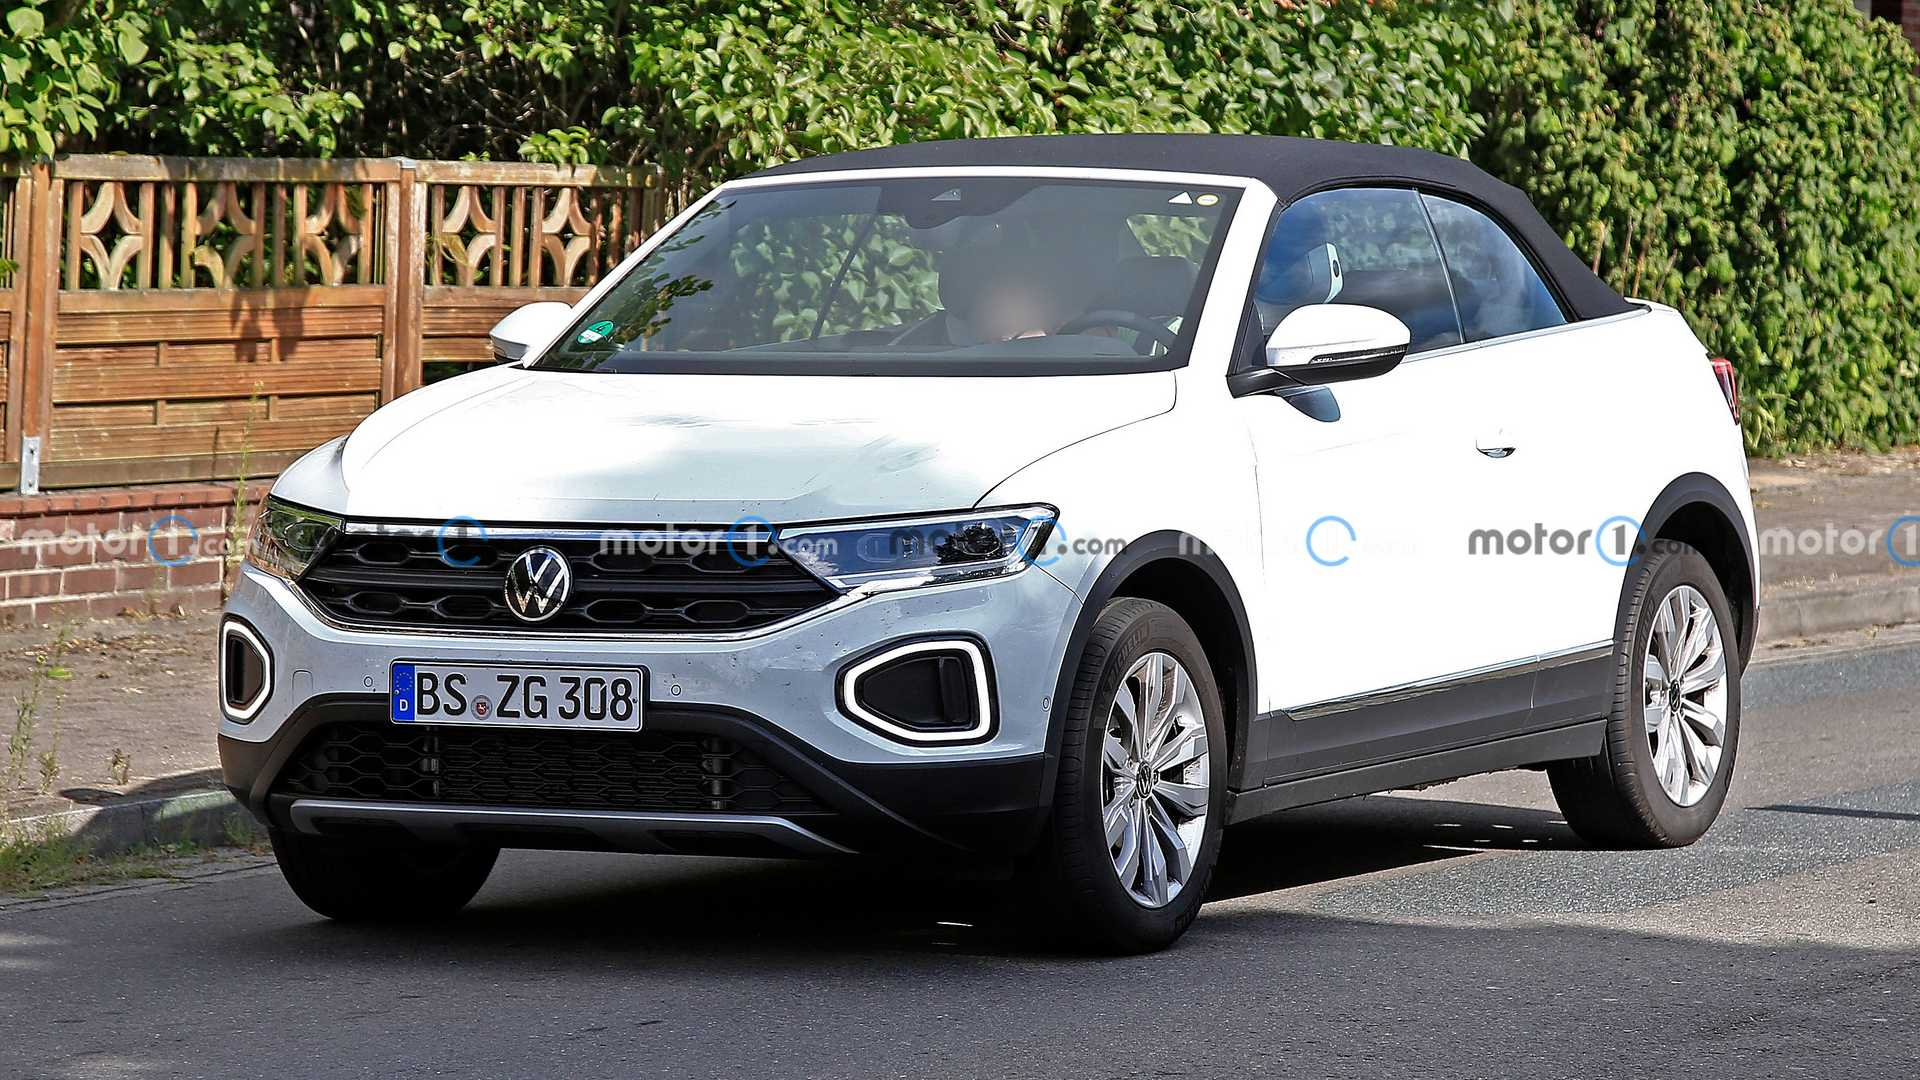 https://cdn.motor1.com/images/mgl/4yKjo/s6/vw-t-roc-cabriolet-facelift-first-spy-photo-front-three-quarters.jpg